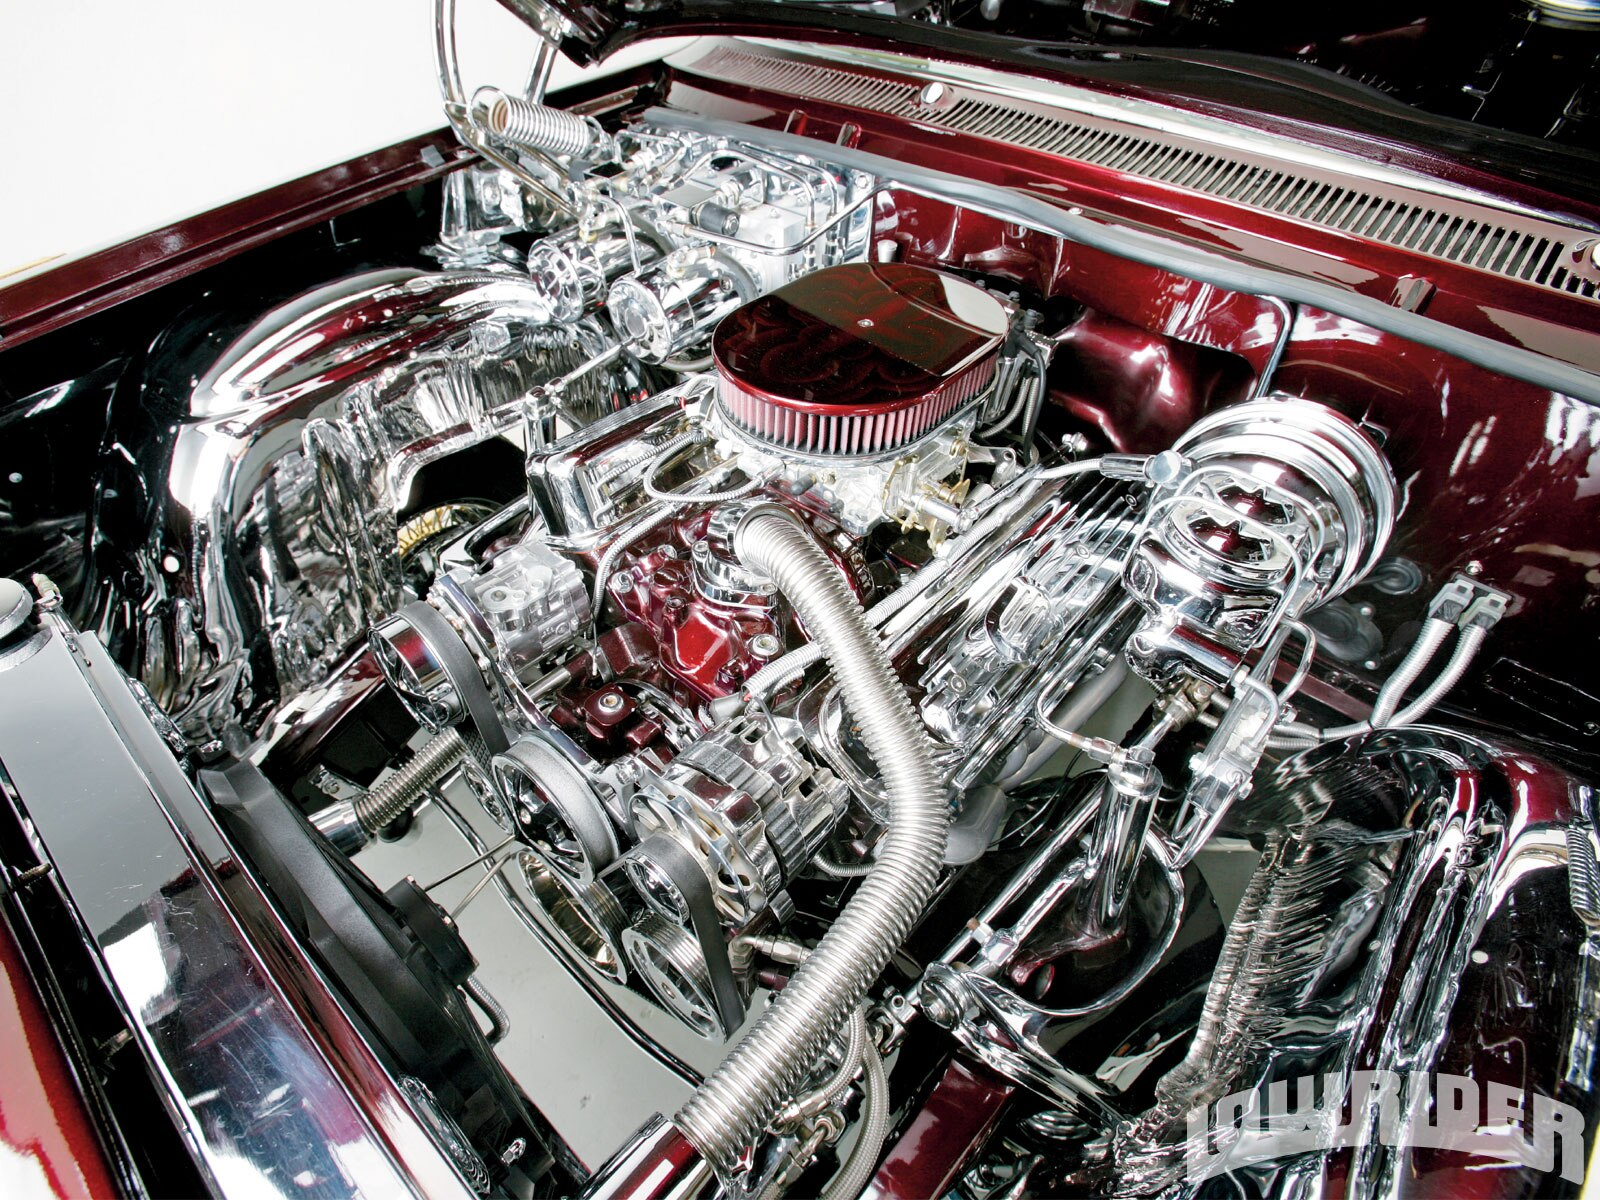 lrmp_1006_03_o-1962_chevy_impala_convertible-engine_bay2